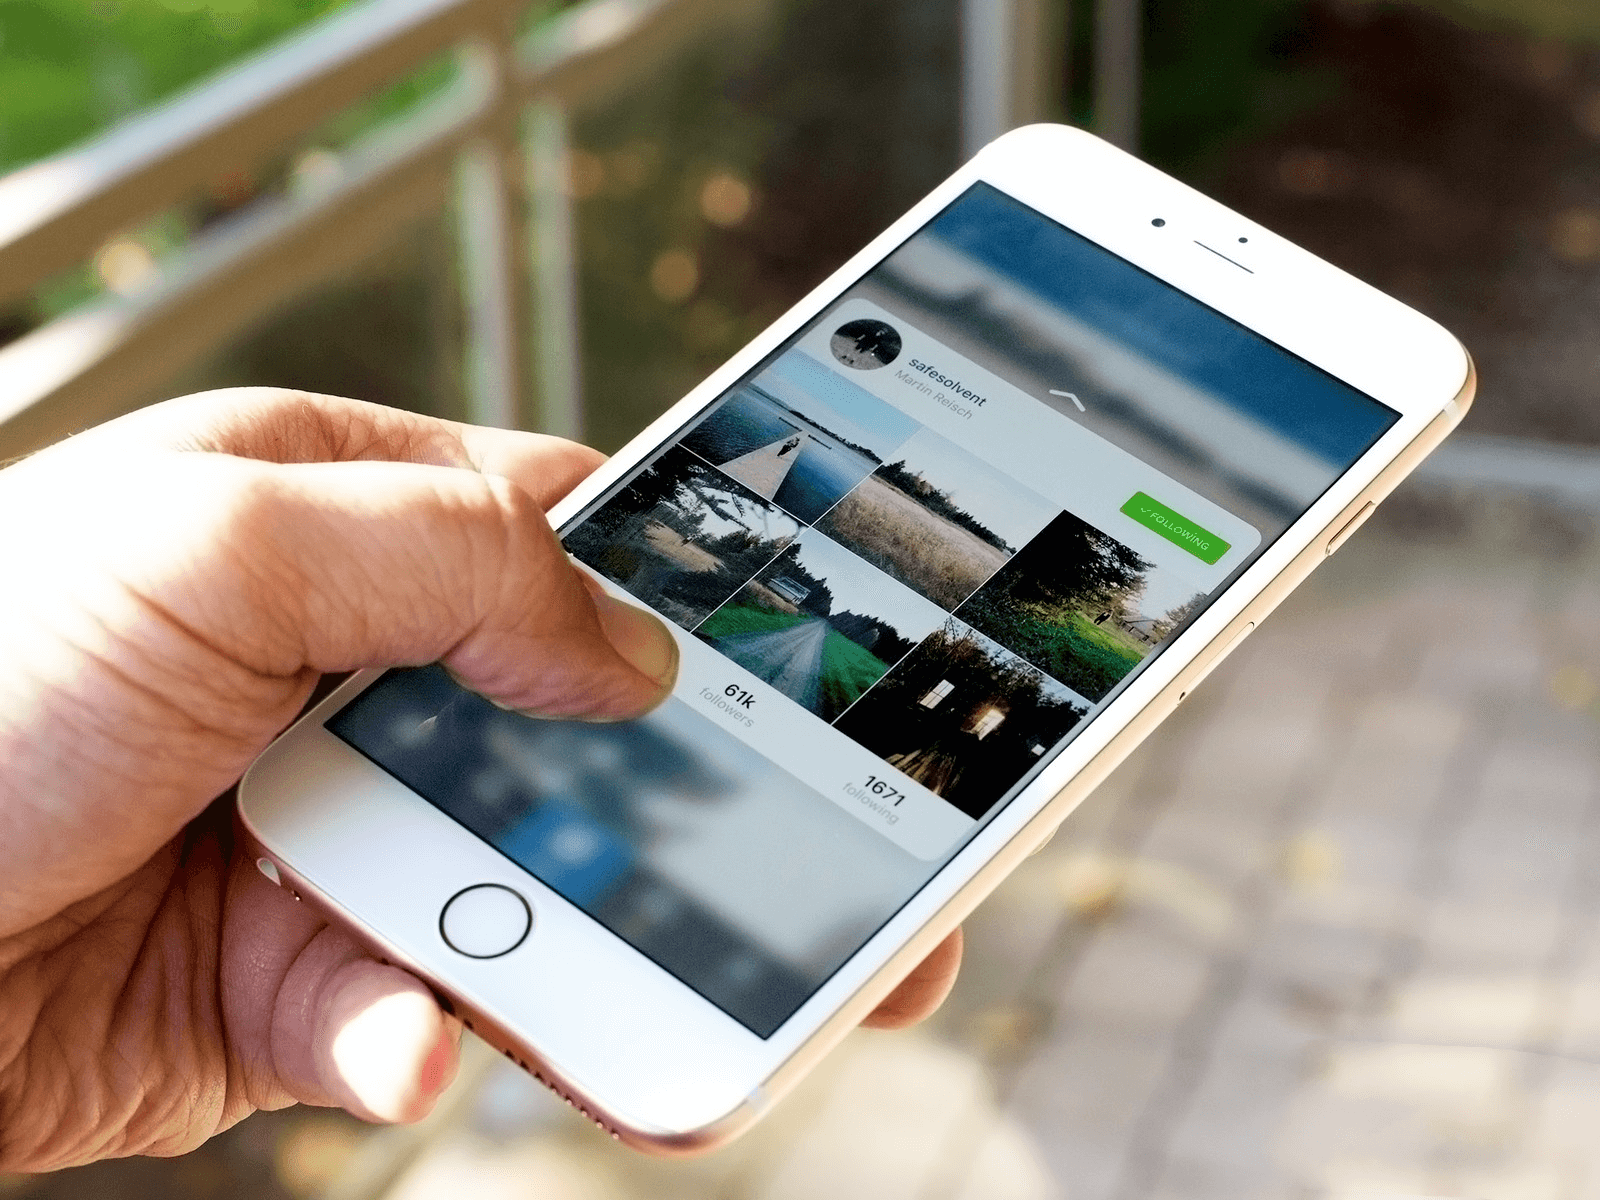 How to clear search history in Instagram